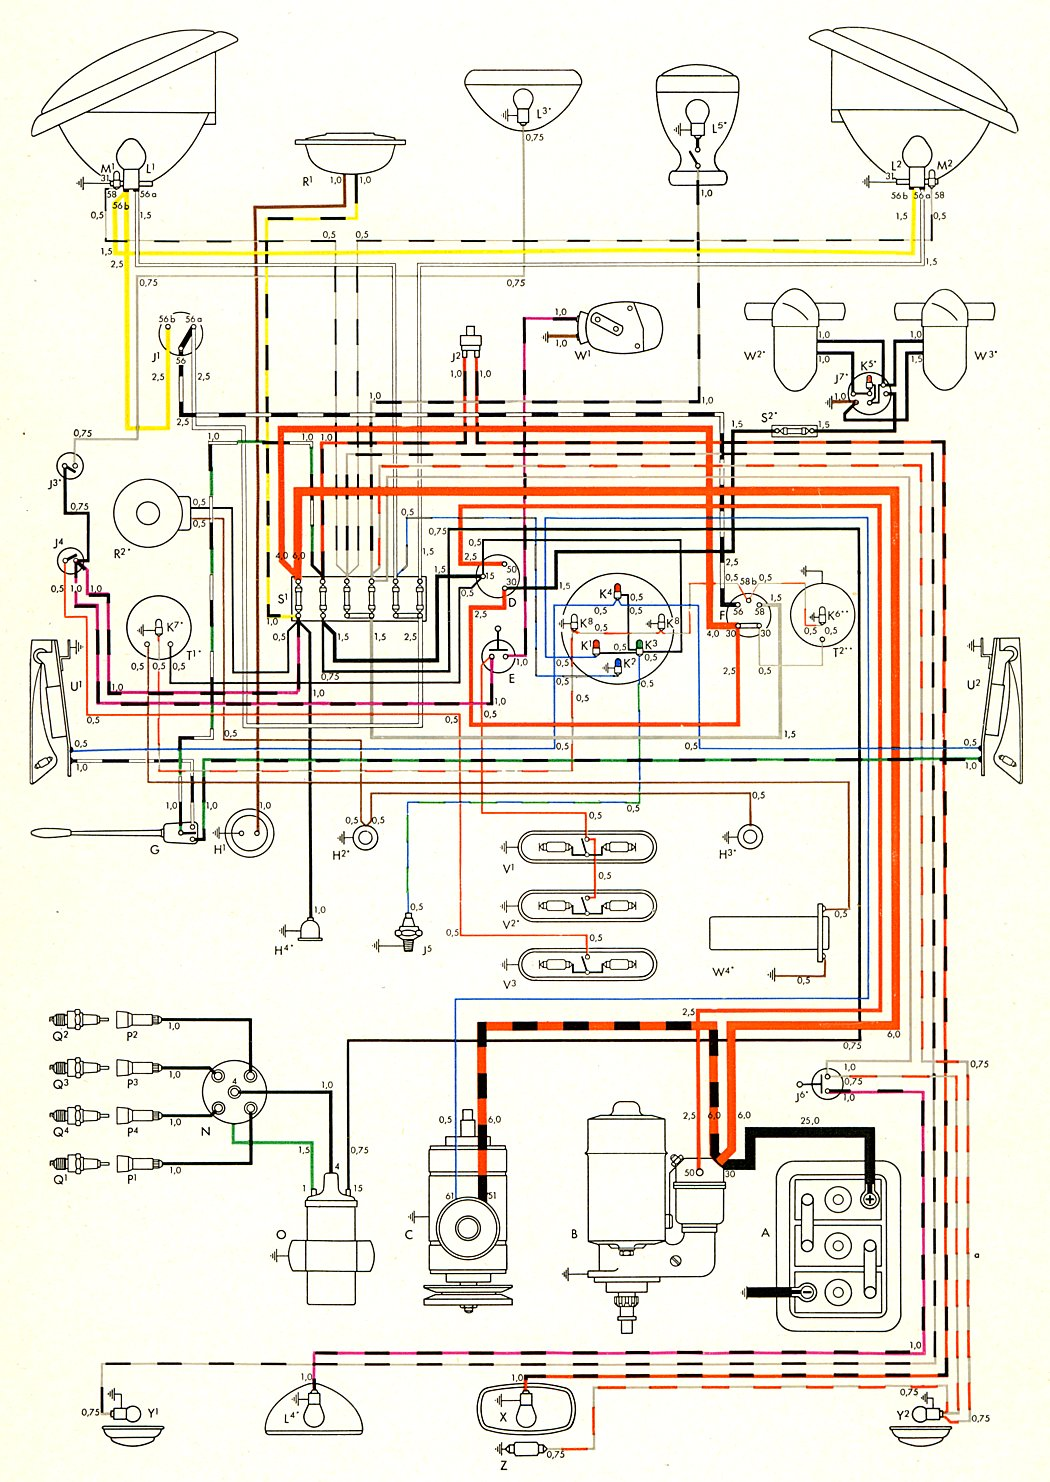 bus_nov57 1957 bus wiring diagram thegoldenbug com 1971 vw bus wiring diagram at mifinder.co